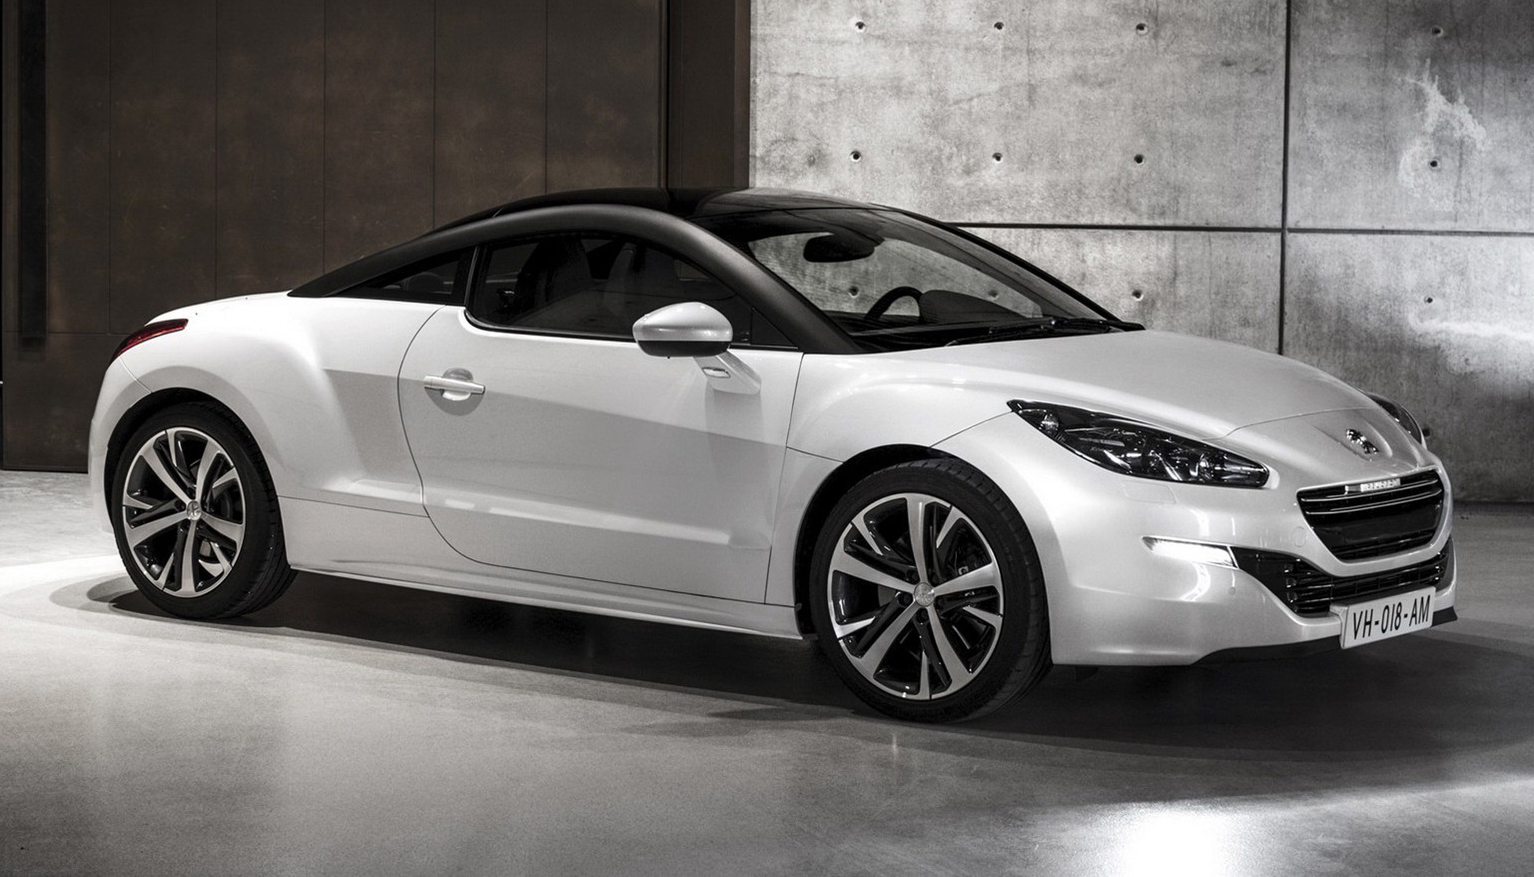 Car Barn Sport: Peugeot RCZ Coupe (2013